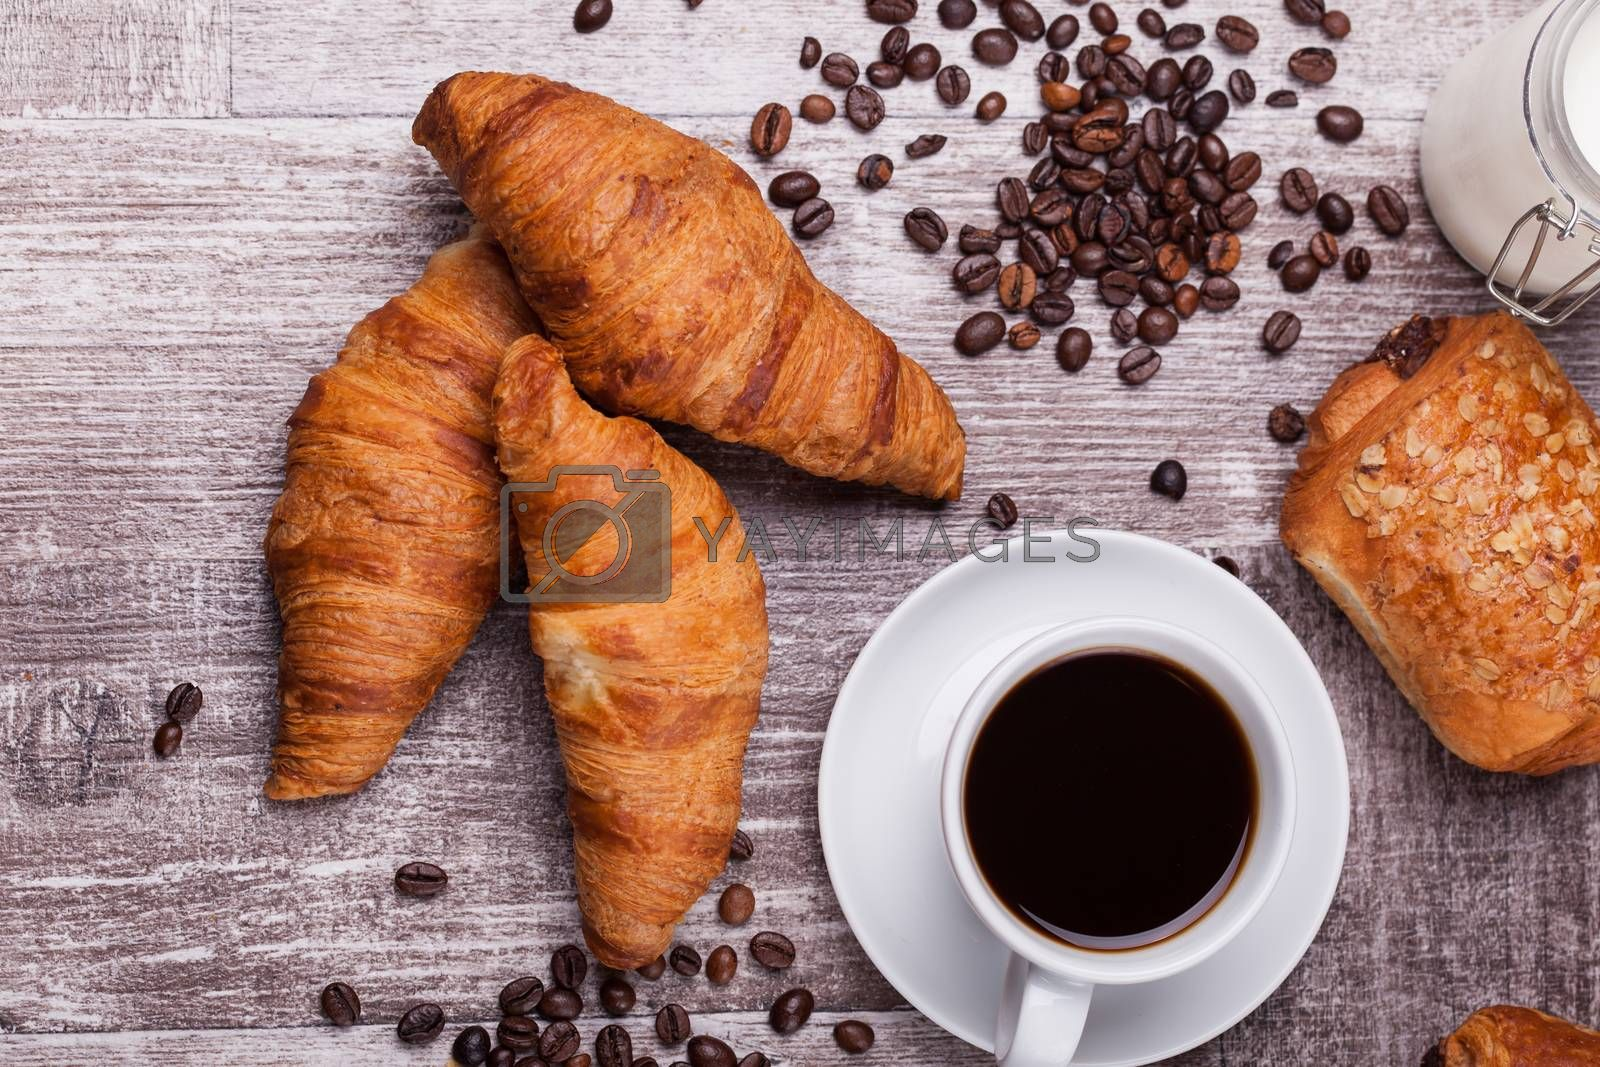 Coffee and freshly baked butter croissant on vintage wooden table by DCStudio